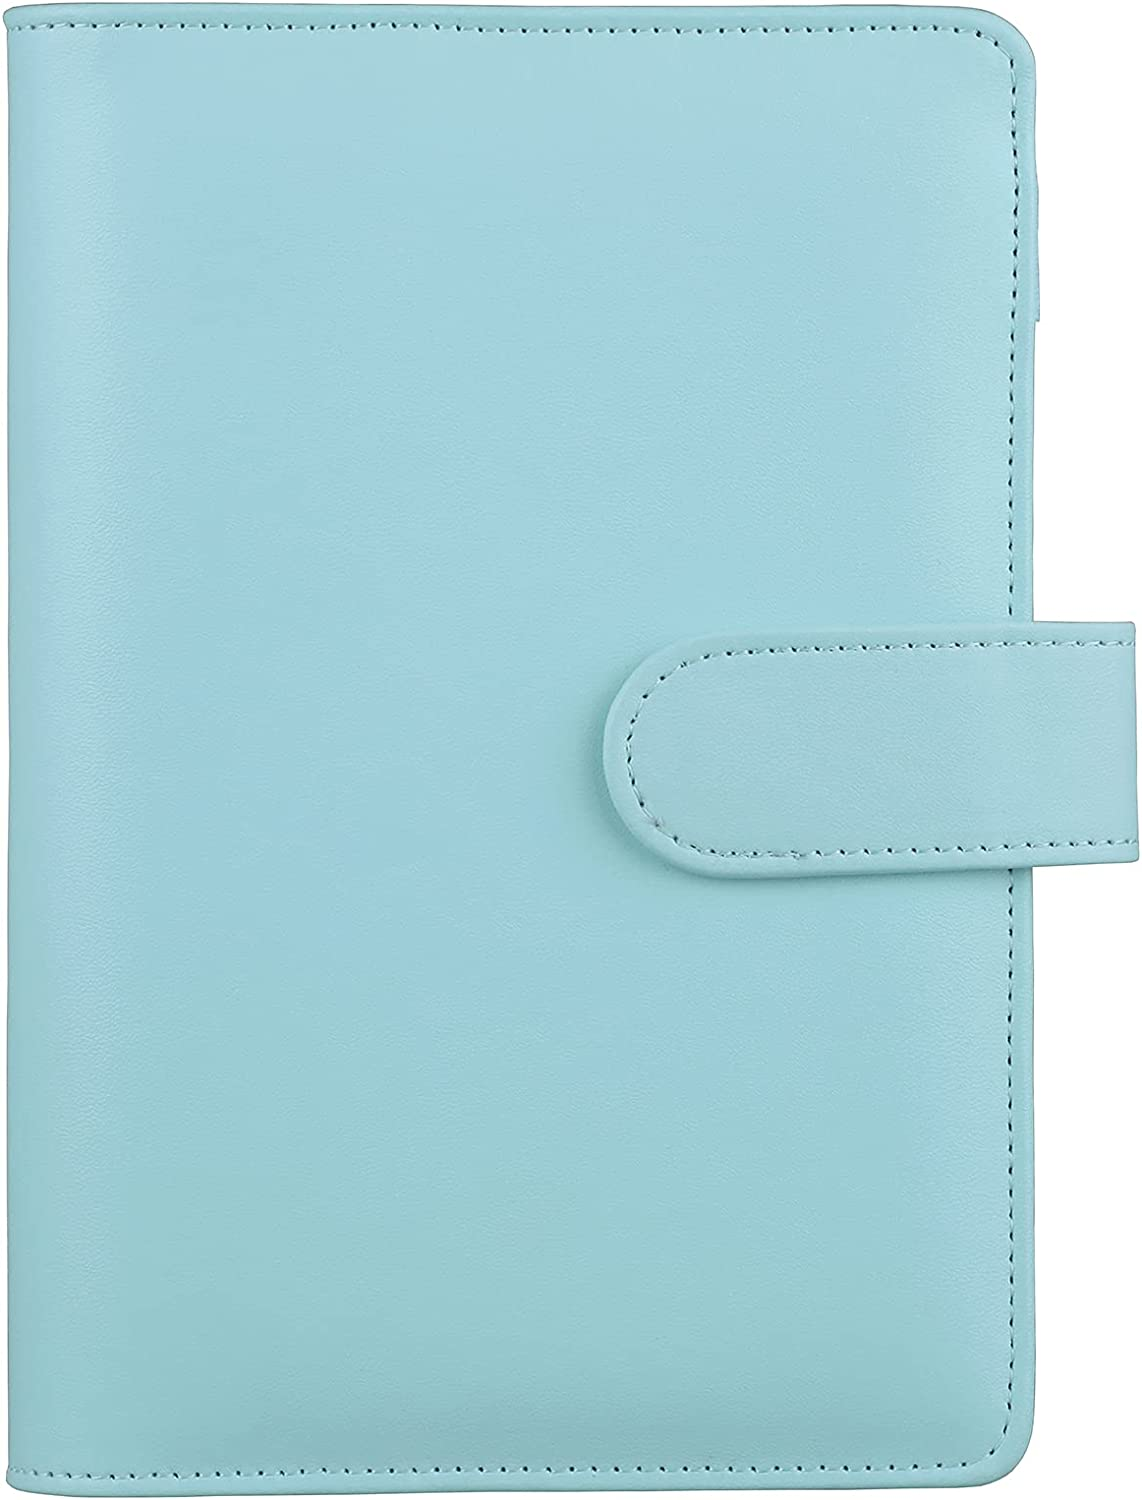 HAUTOCO A6 PU Leather Notebook Binder Refillable San Diego Mall half Ring 6 f